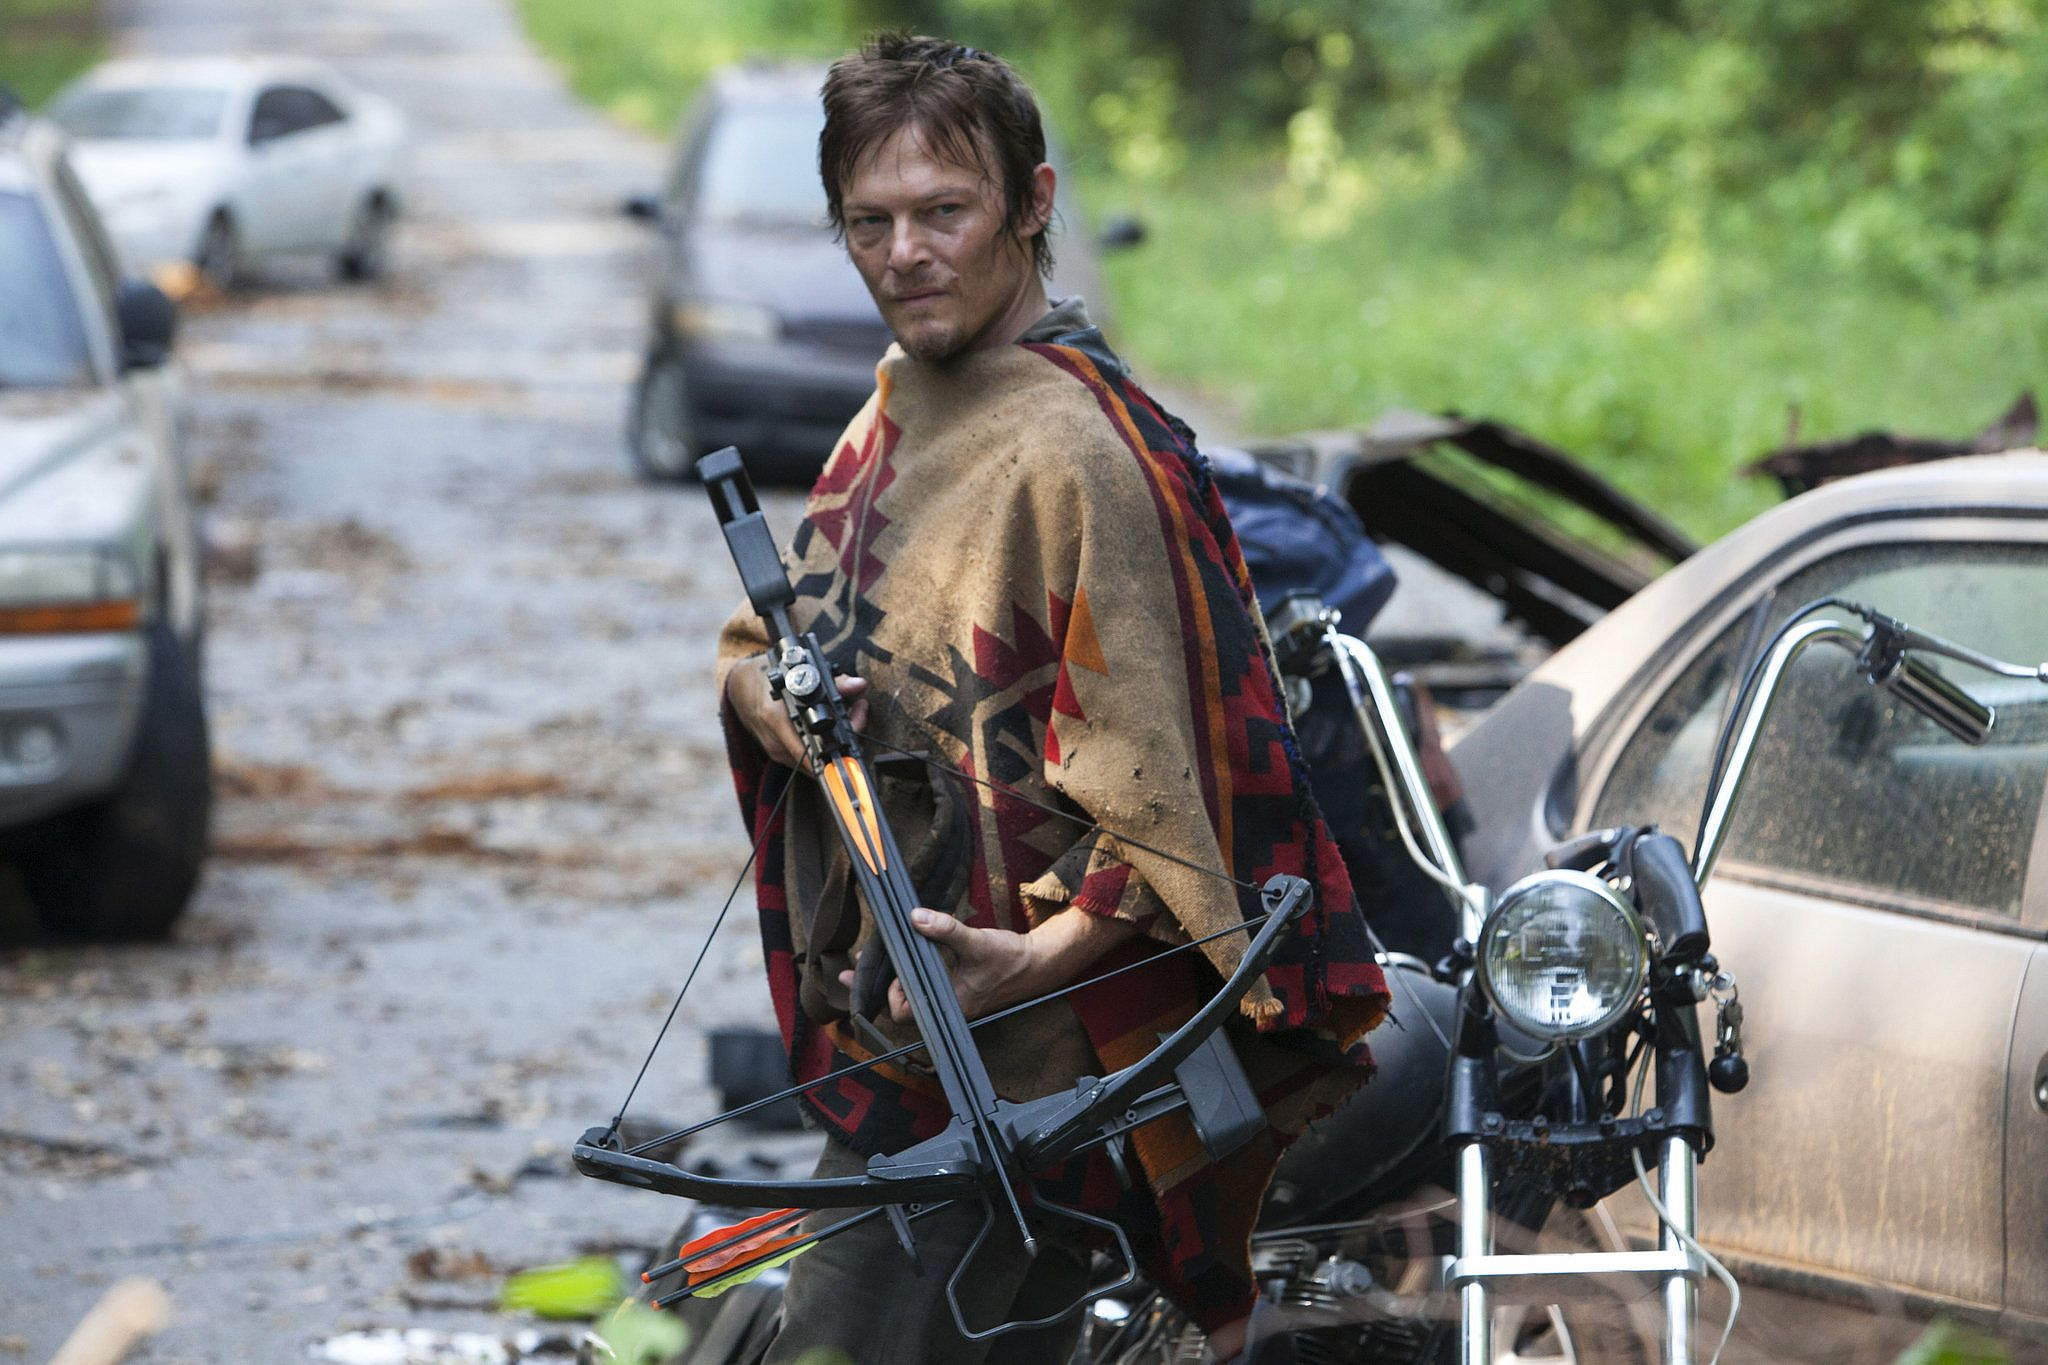 'The Walking Dead' Season 5 Smashes Ratings and Piracy Record